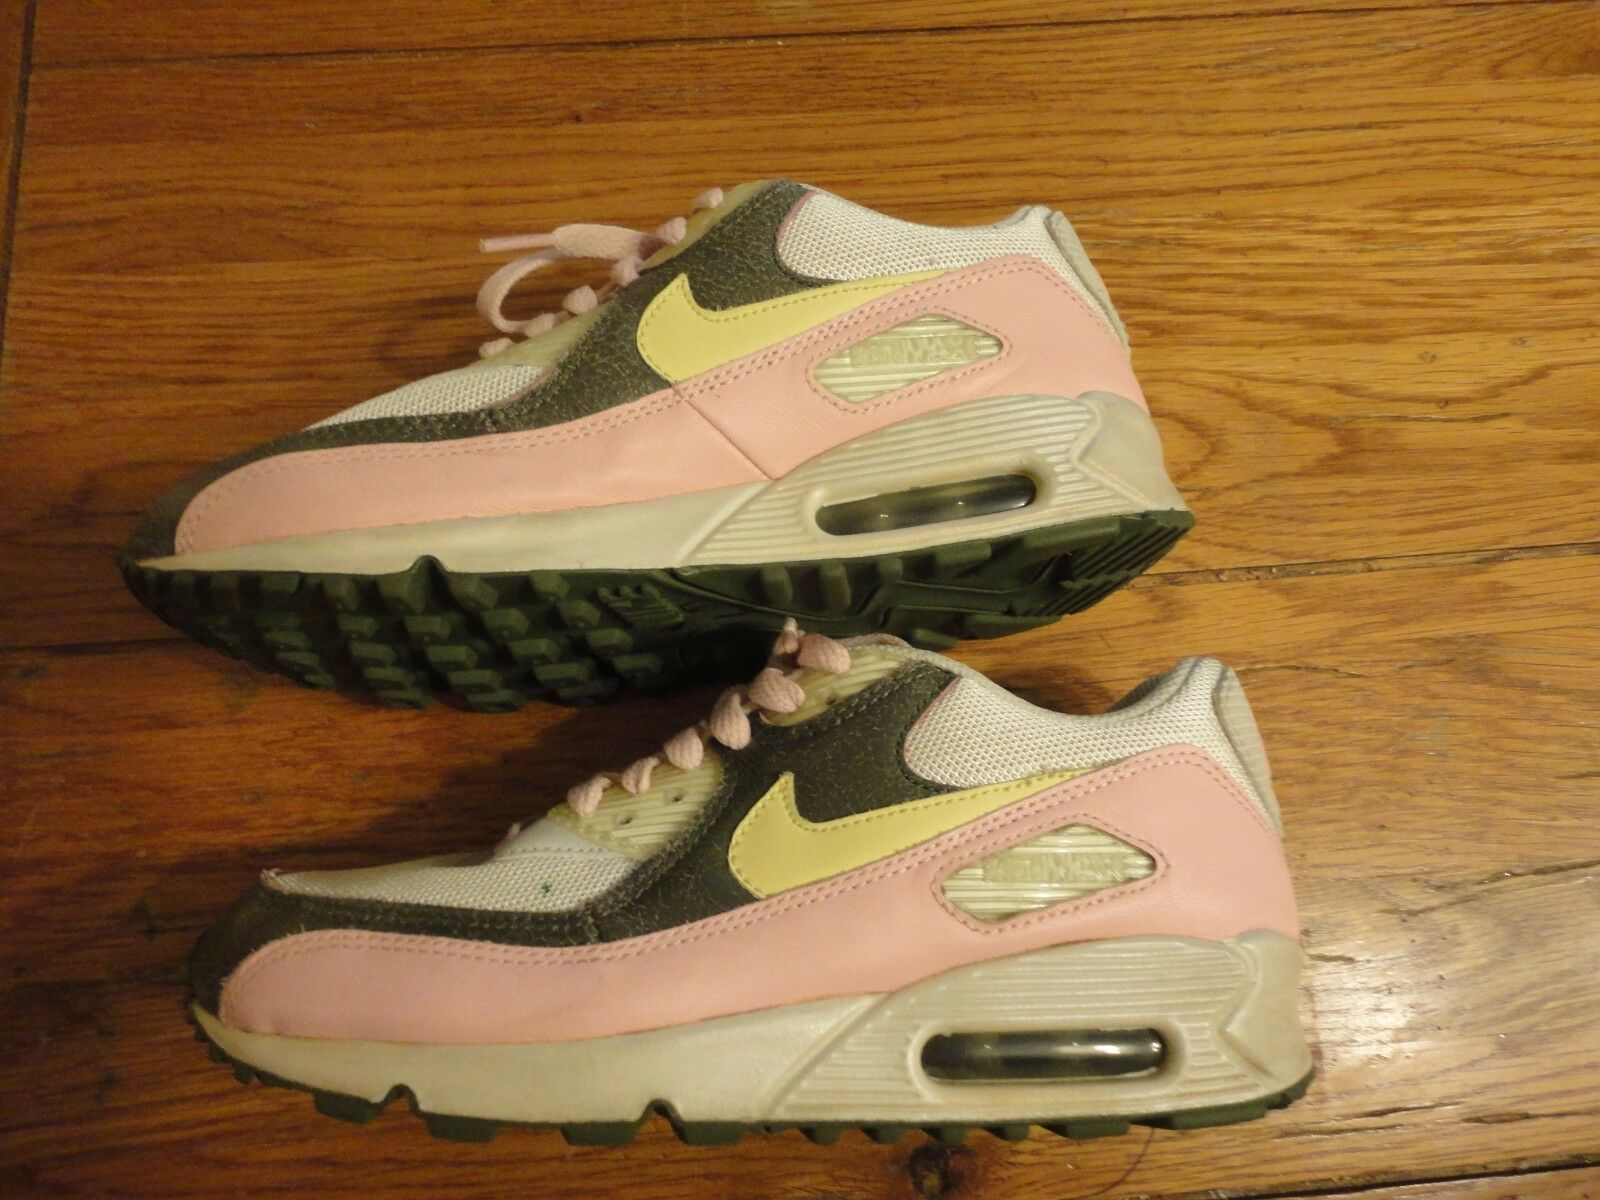 Rare 2007 Nike Air Max 90 EASTER BUNNY PINK BEIGE YELLOW WOMEN size 7